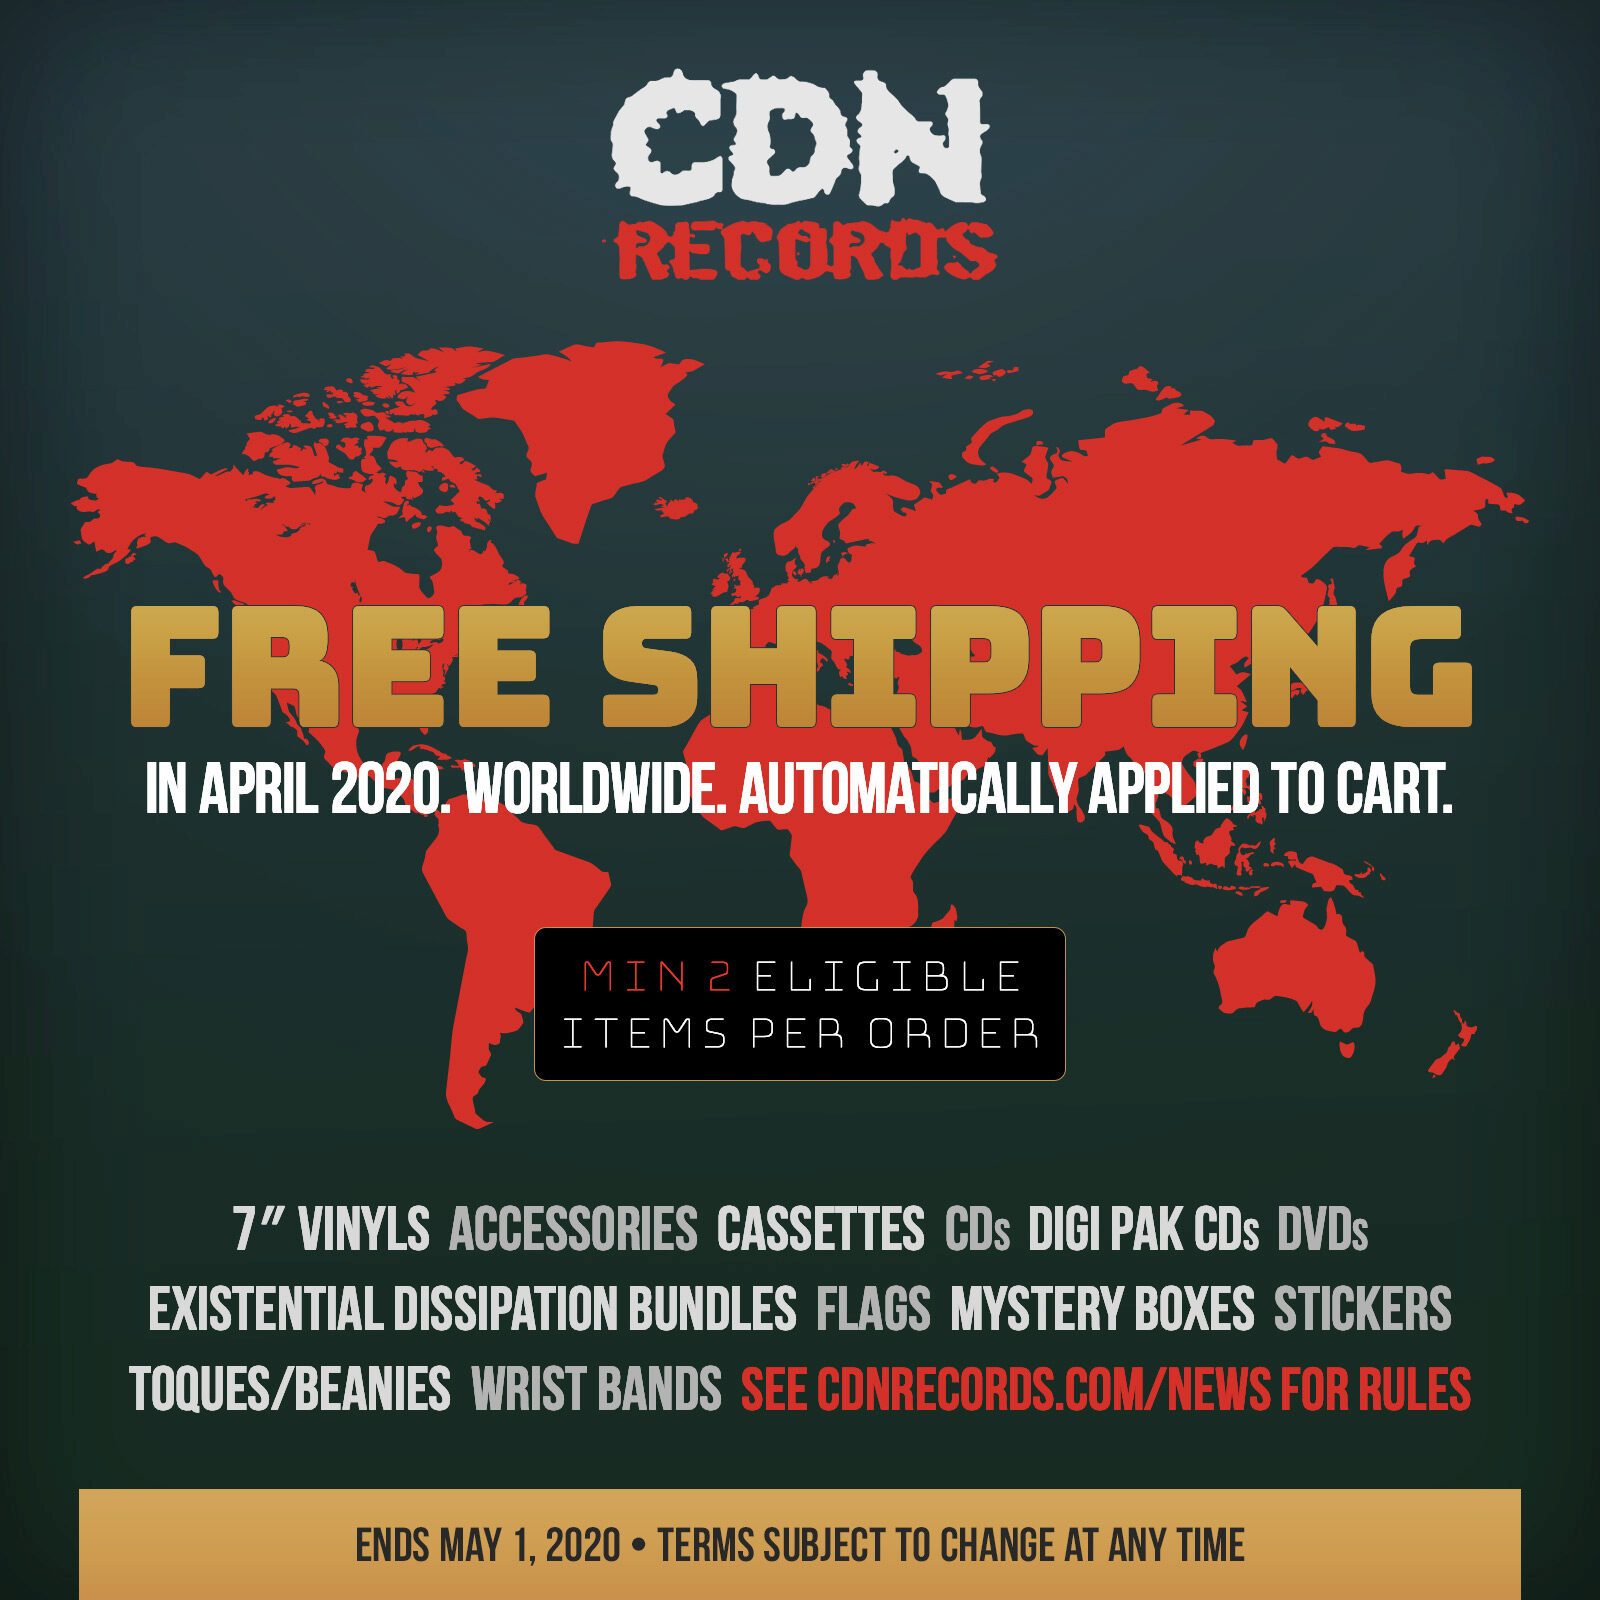 Promo graphic for Free Shipping in April